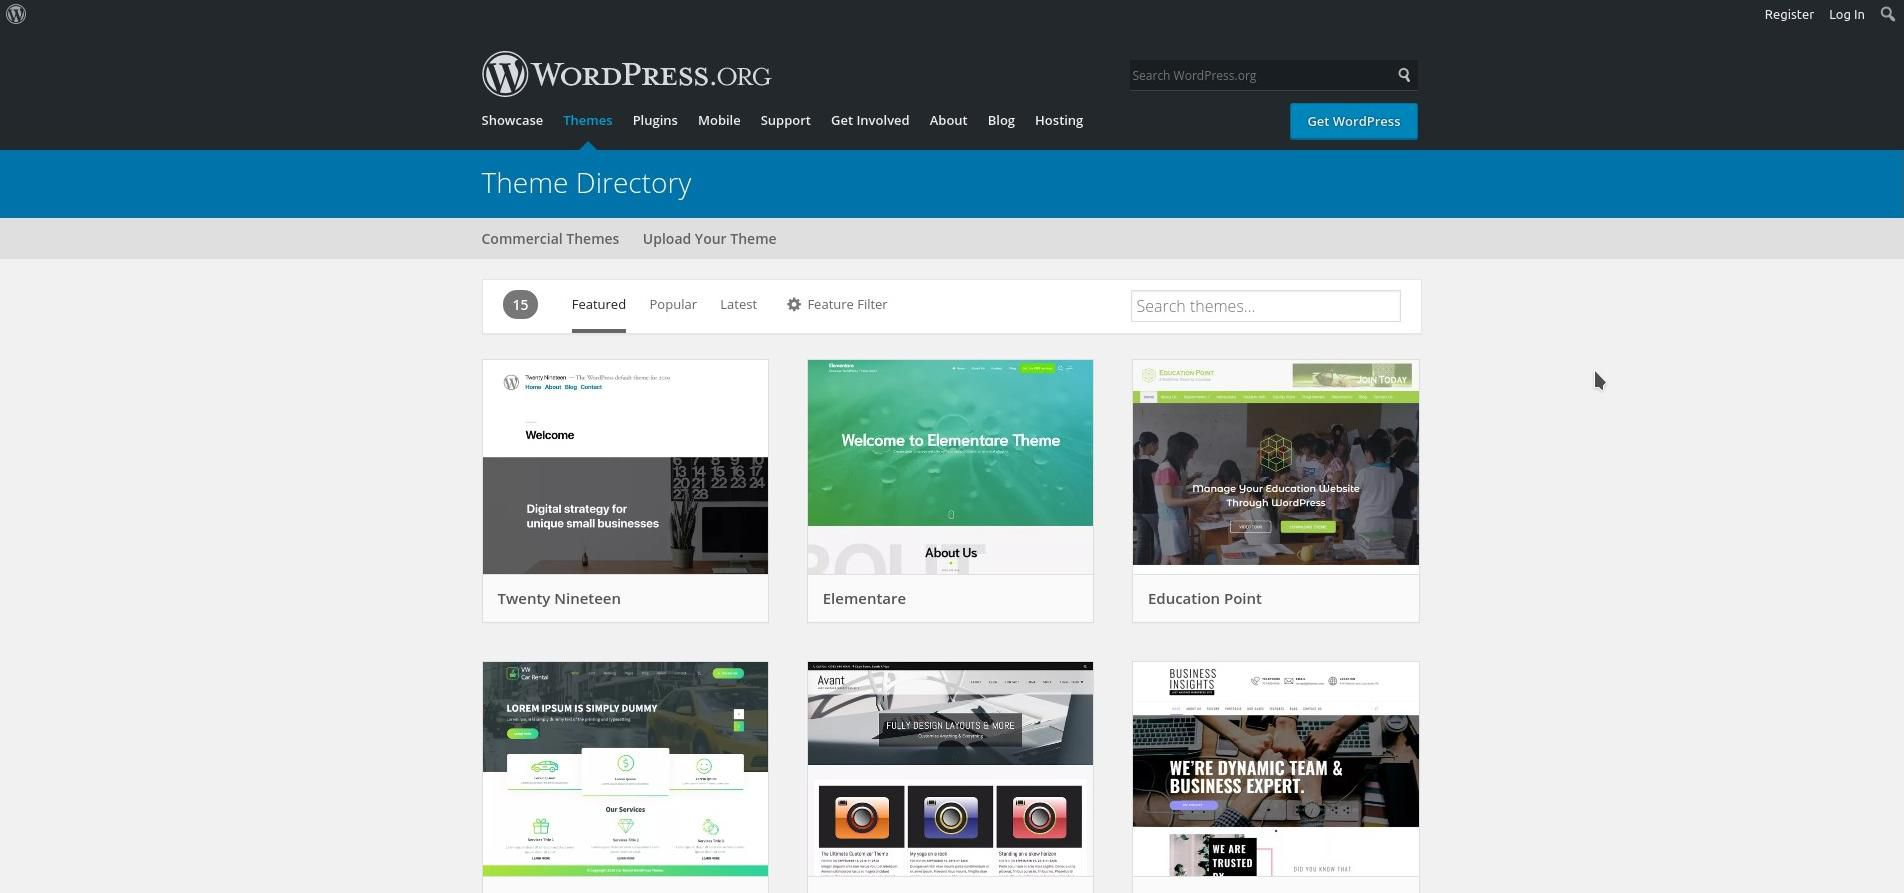 Lucky For You, WordPress Has Tons of Great, Free Themes Available